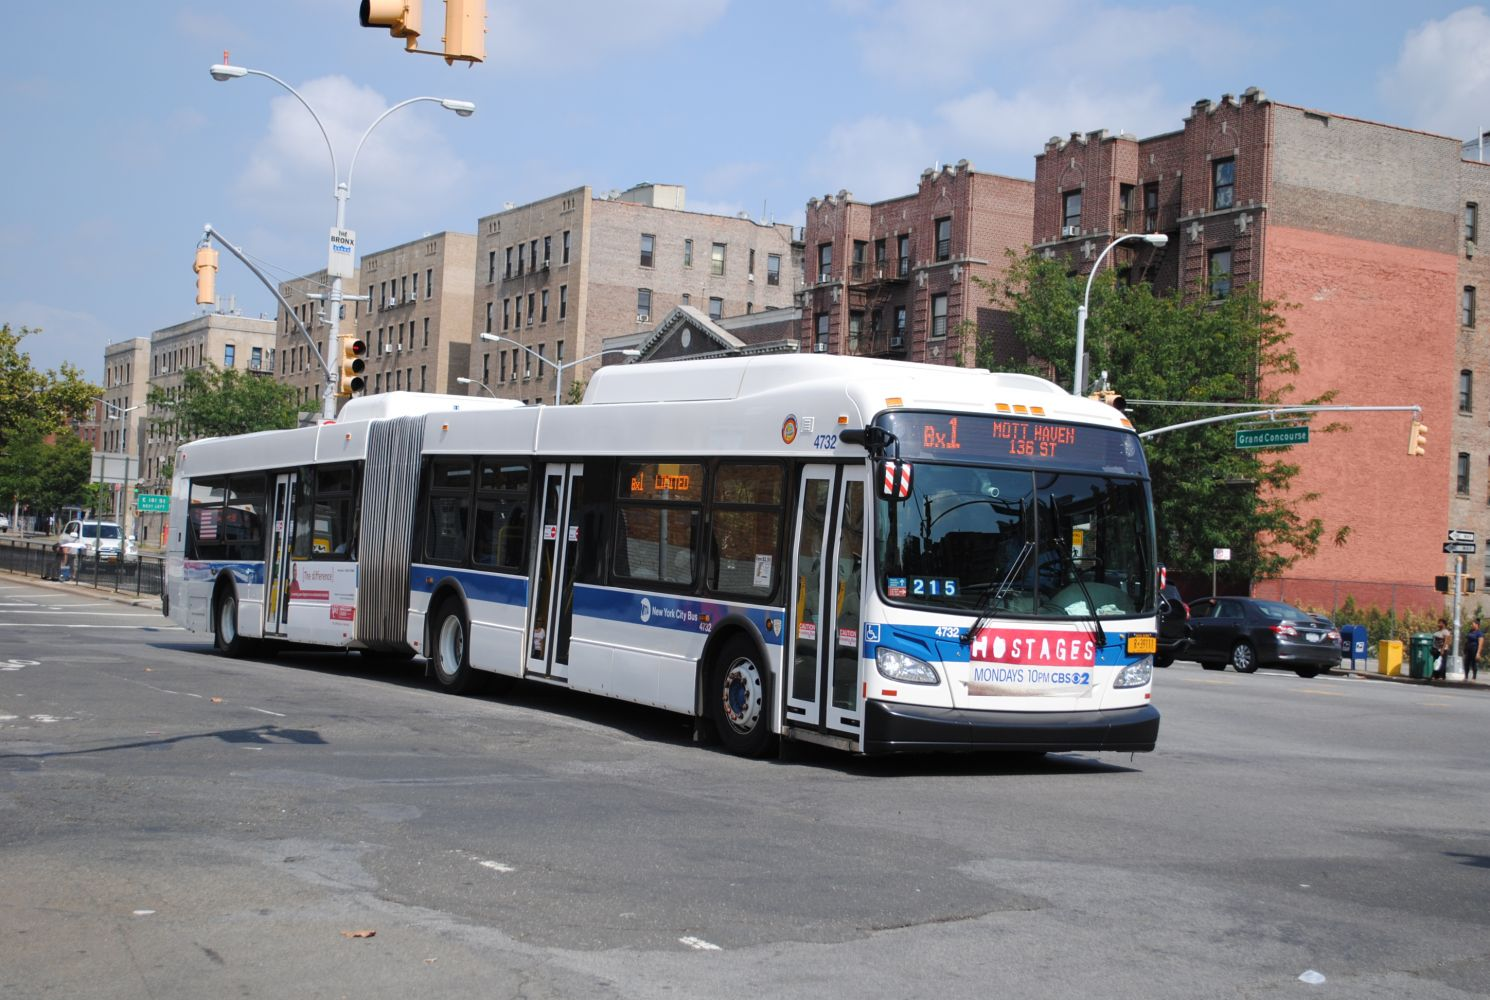 New Flyer XD60 4732 on the Bx1